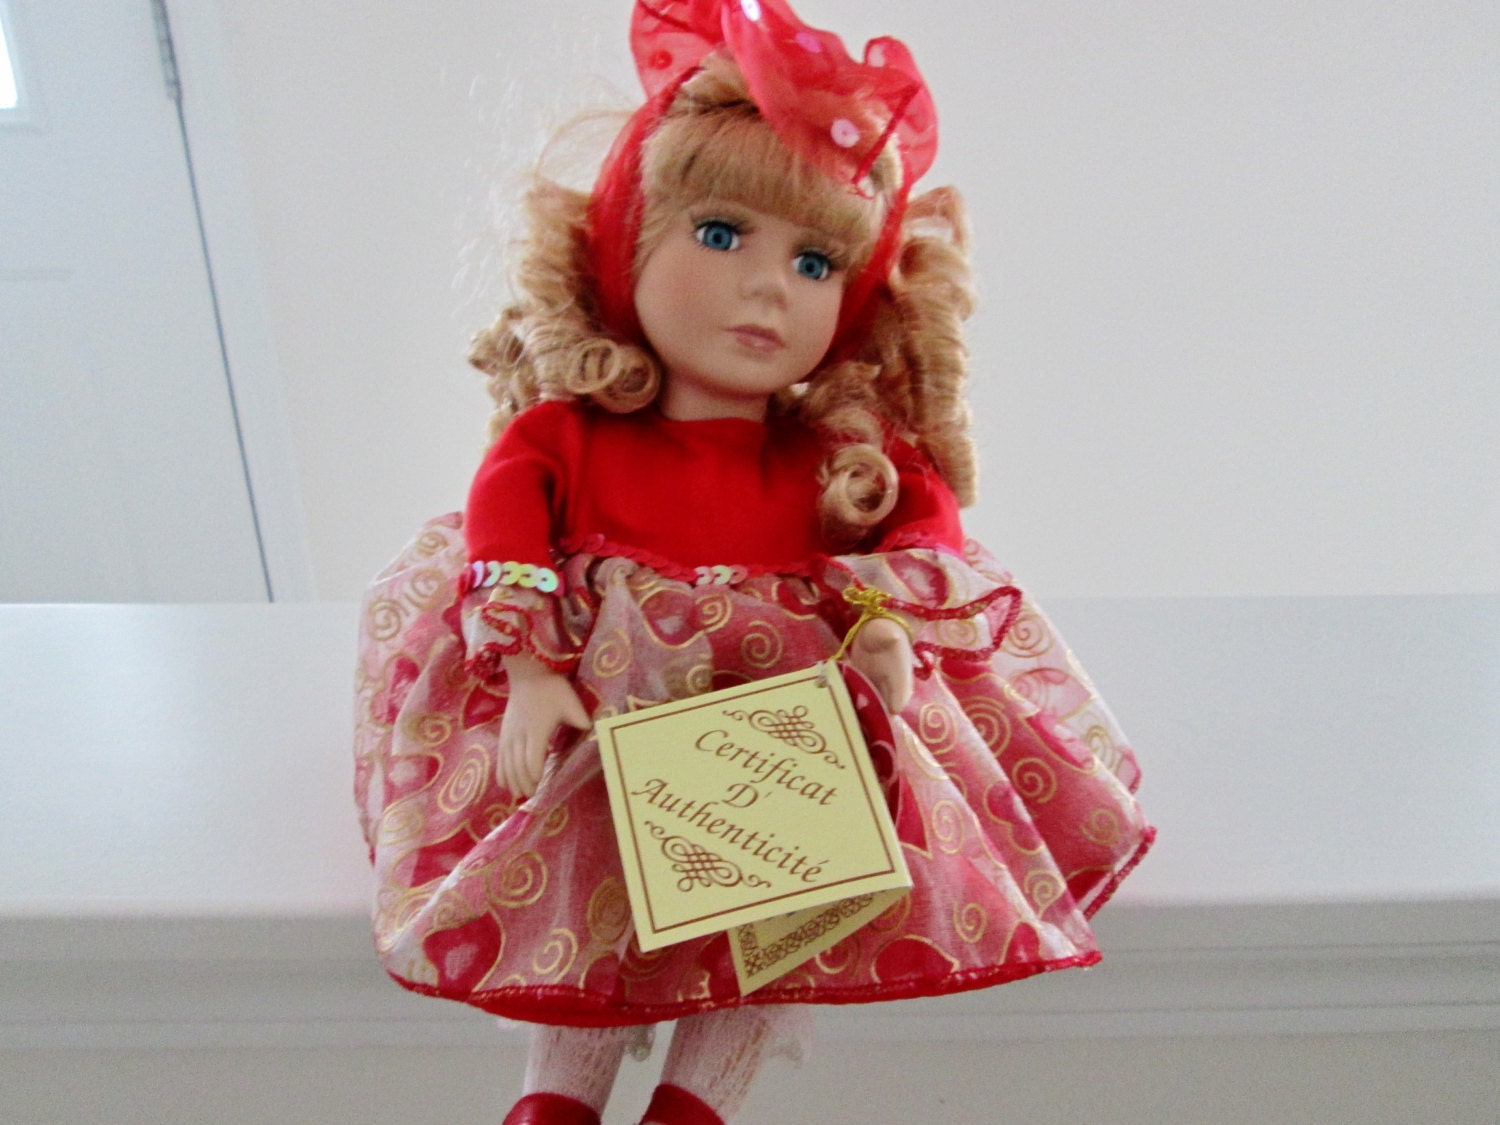 Vintage musical doll salco